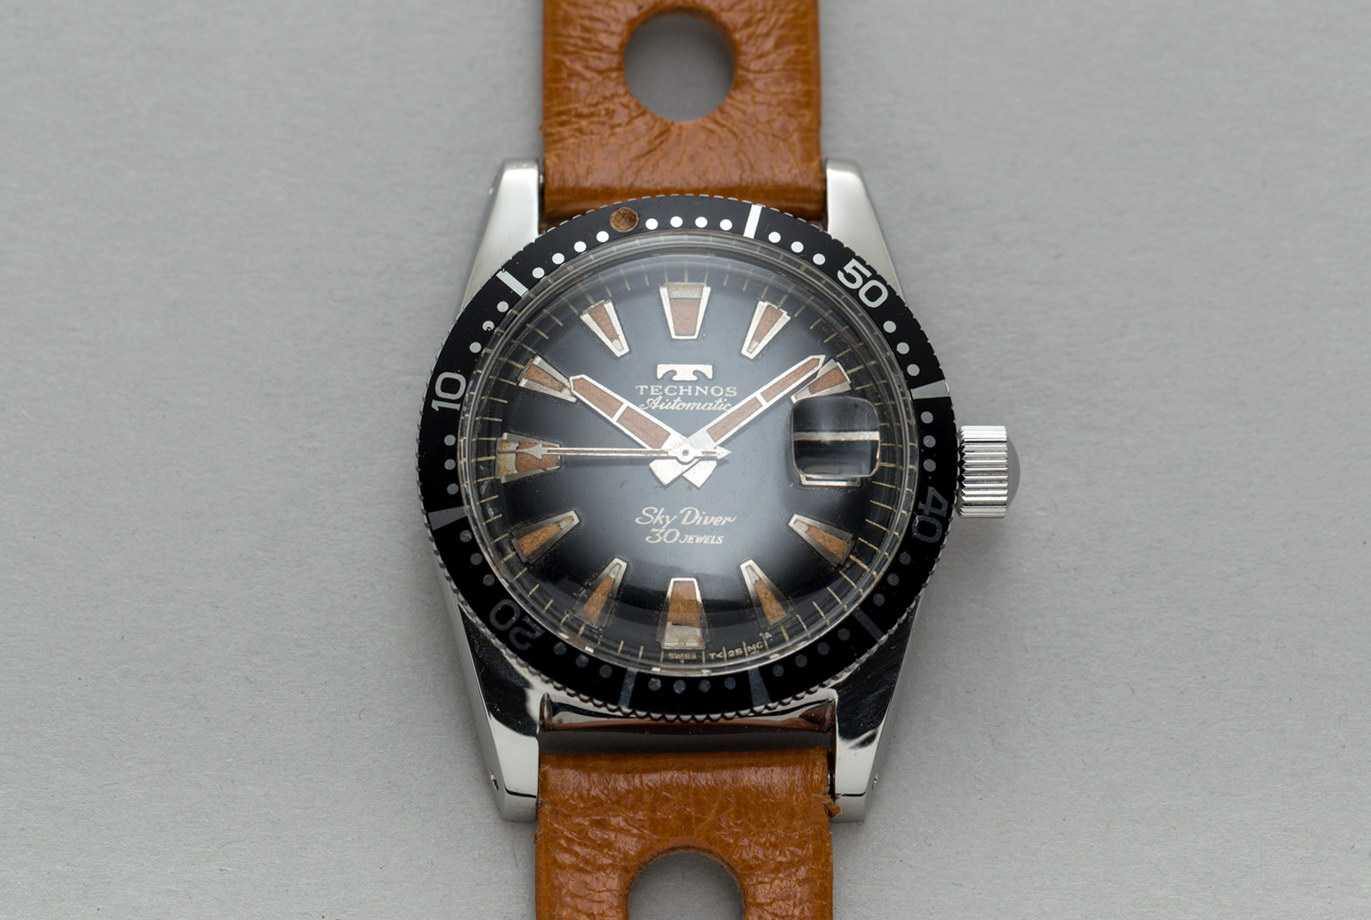 Technos vintage sky diver shuck the oyster vintage watches for Technos watches